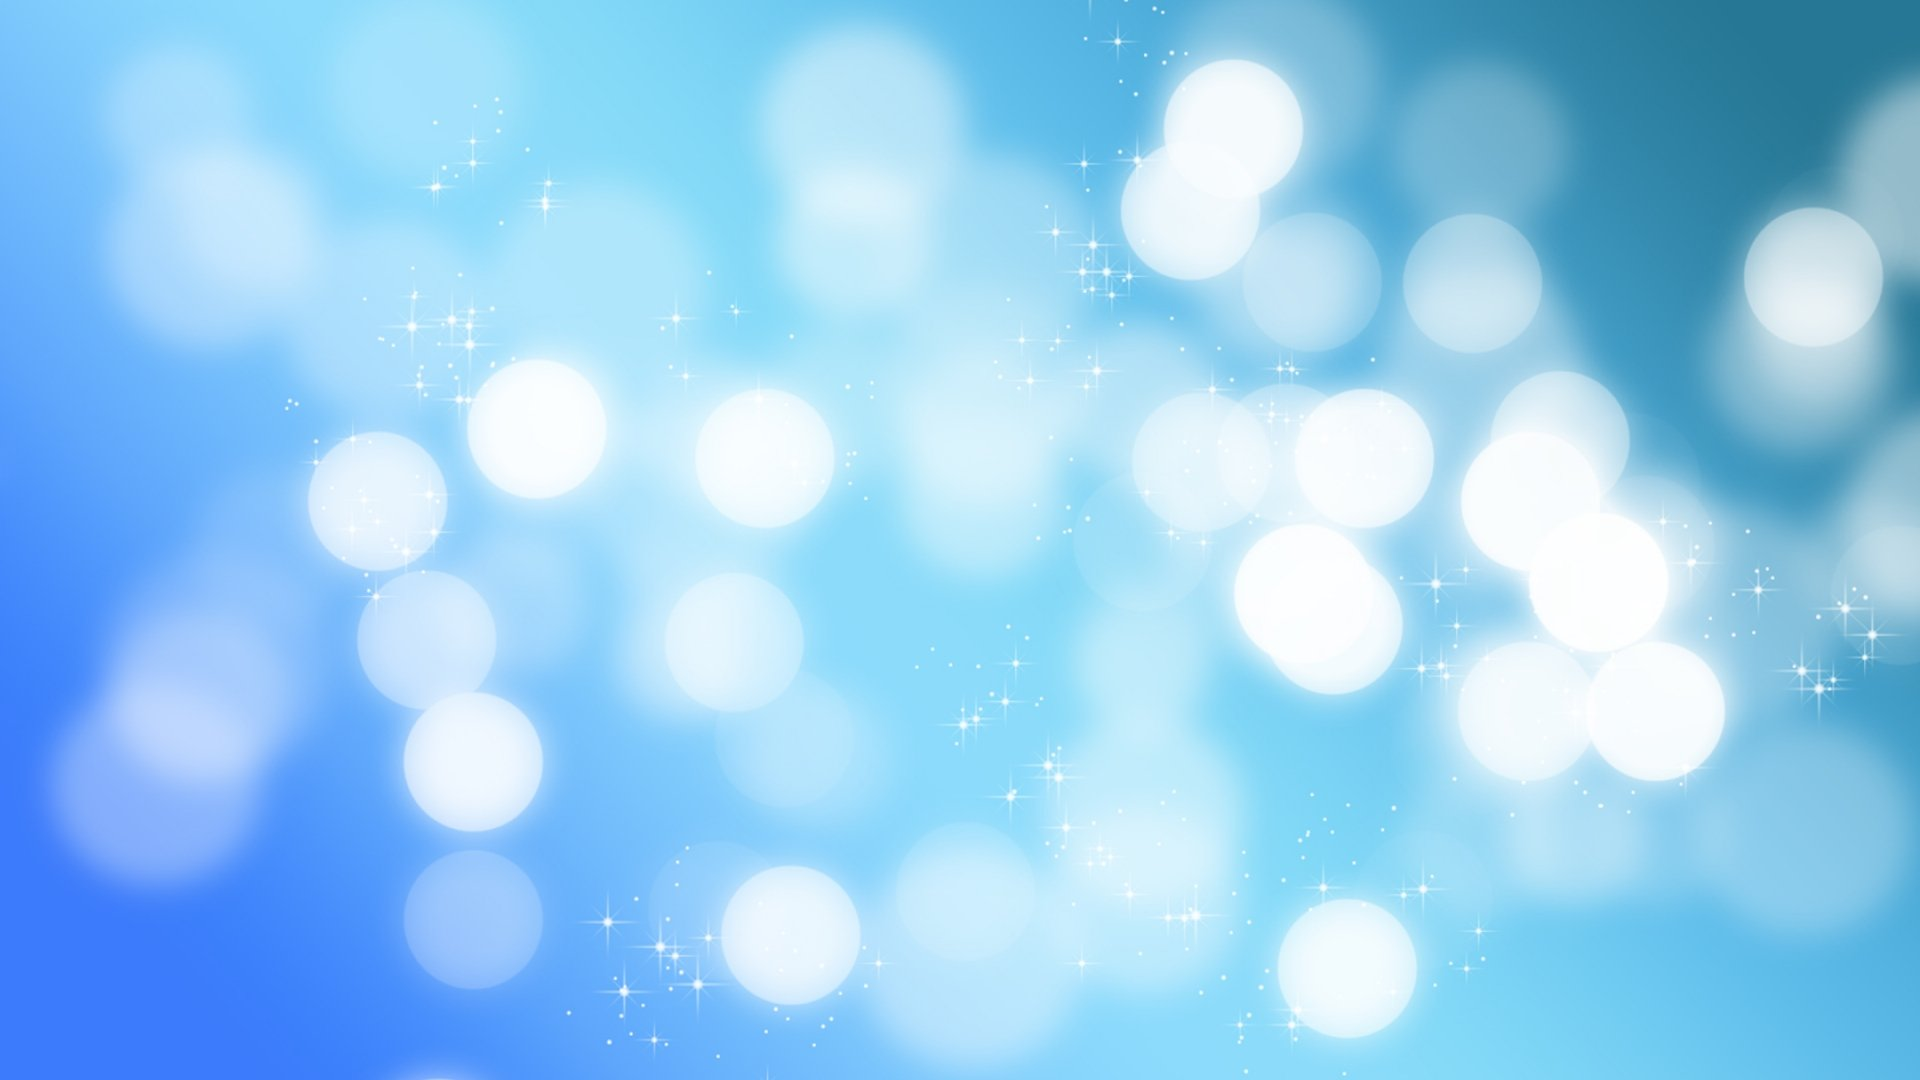 Blue Sparkle Wallpaper HD 1920x1080